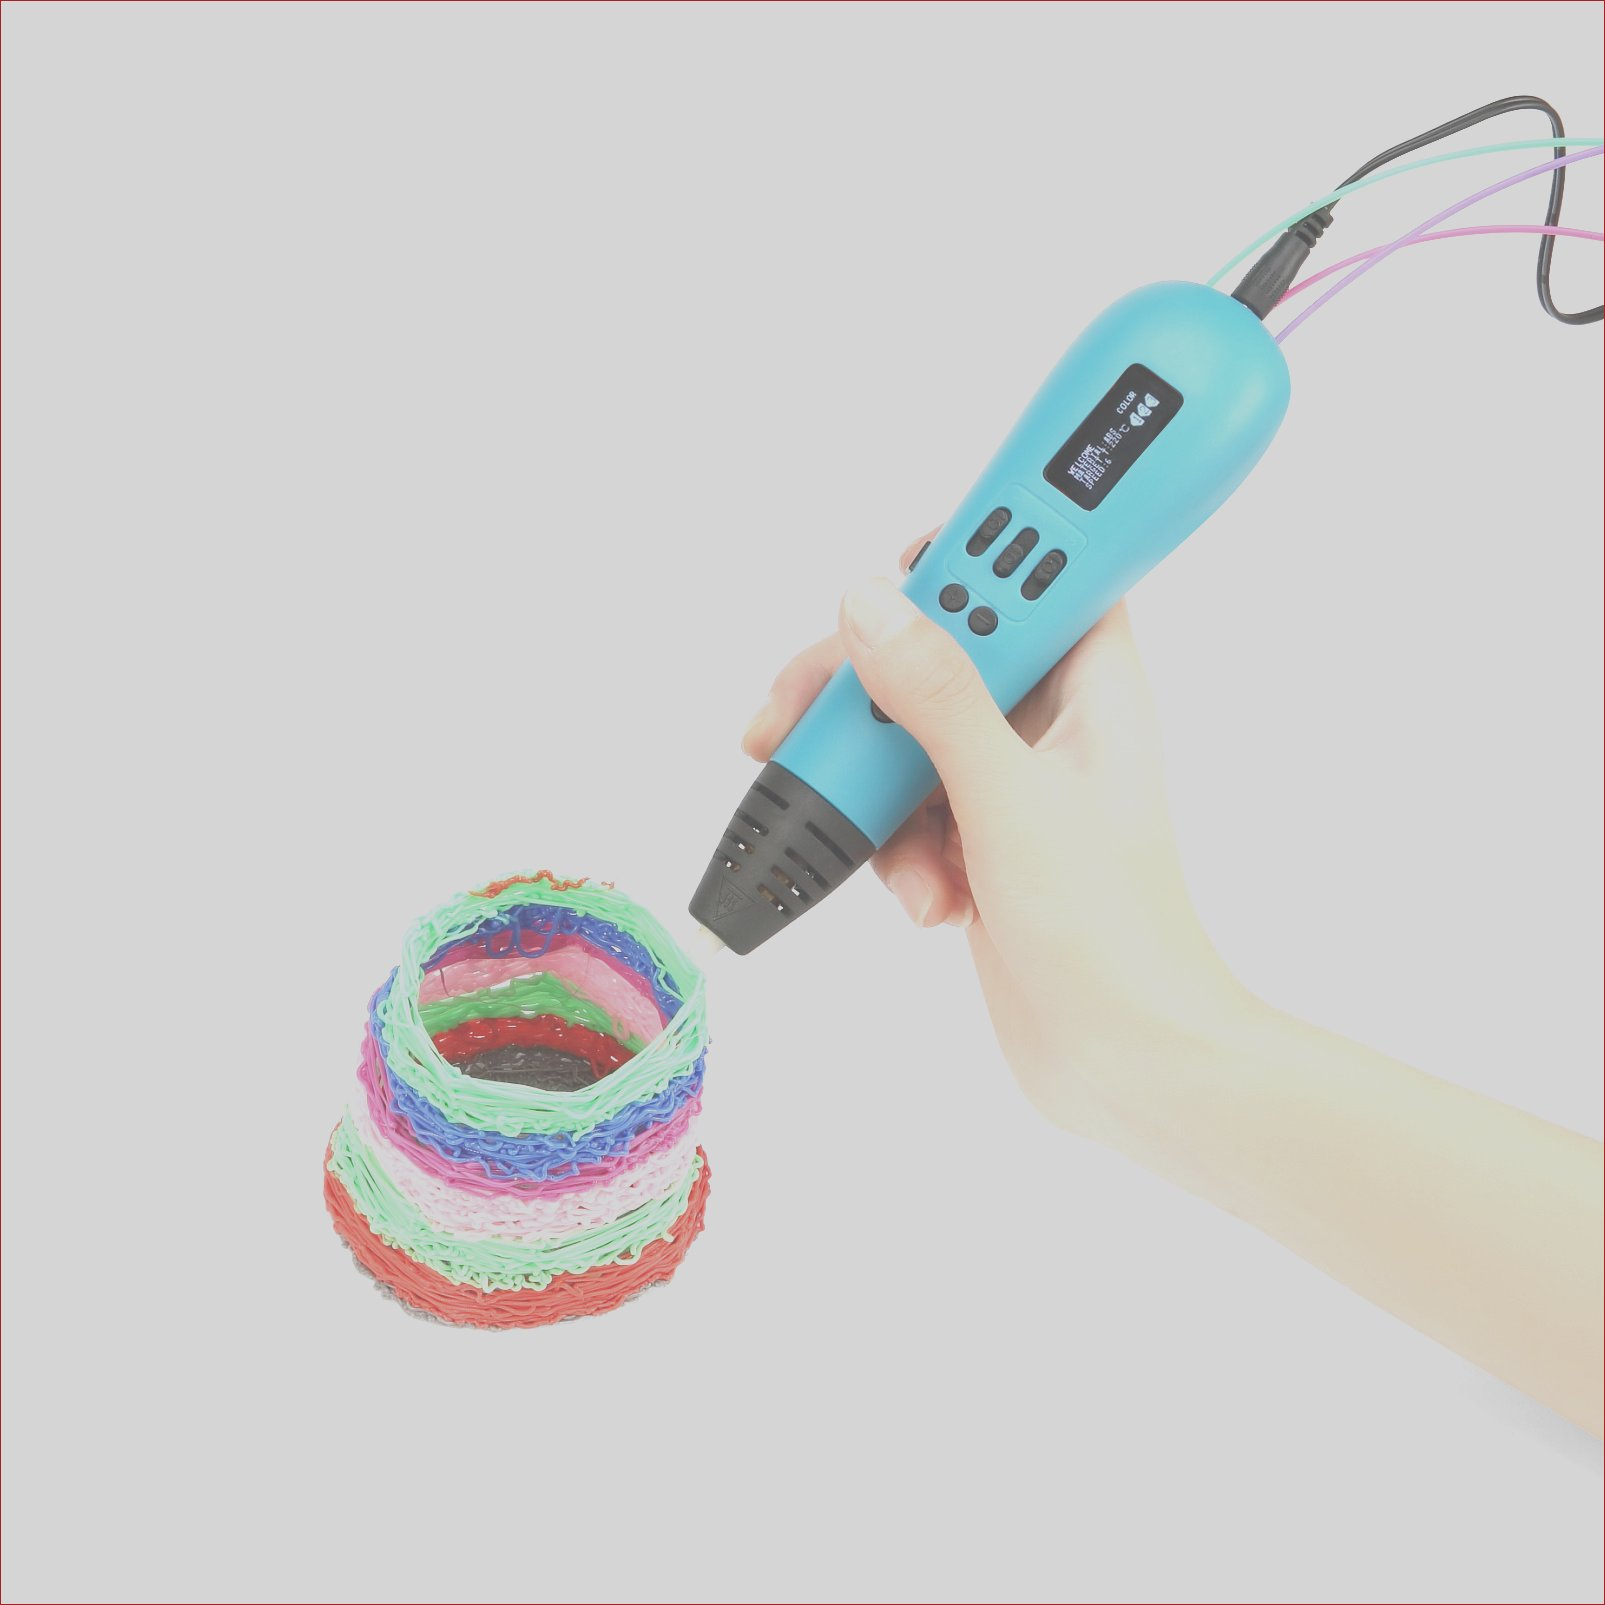 worlds 1st multi color 3d printing pen